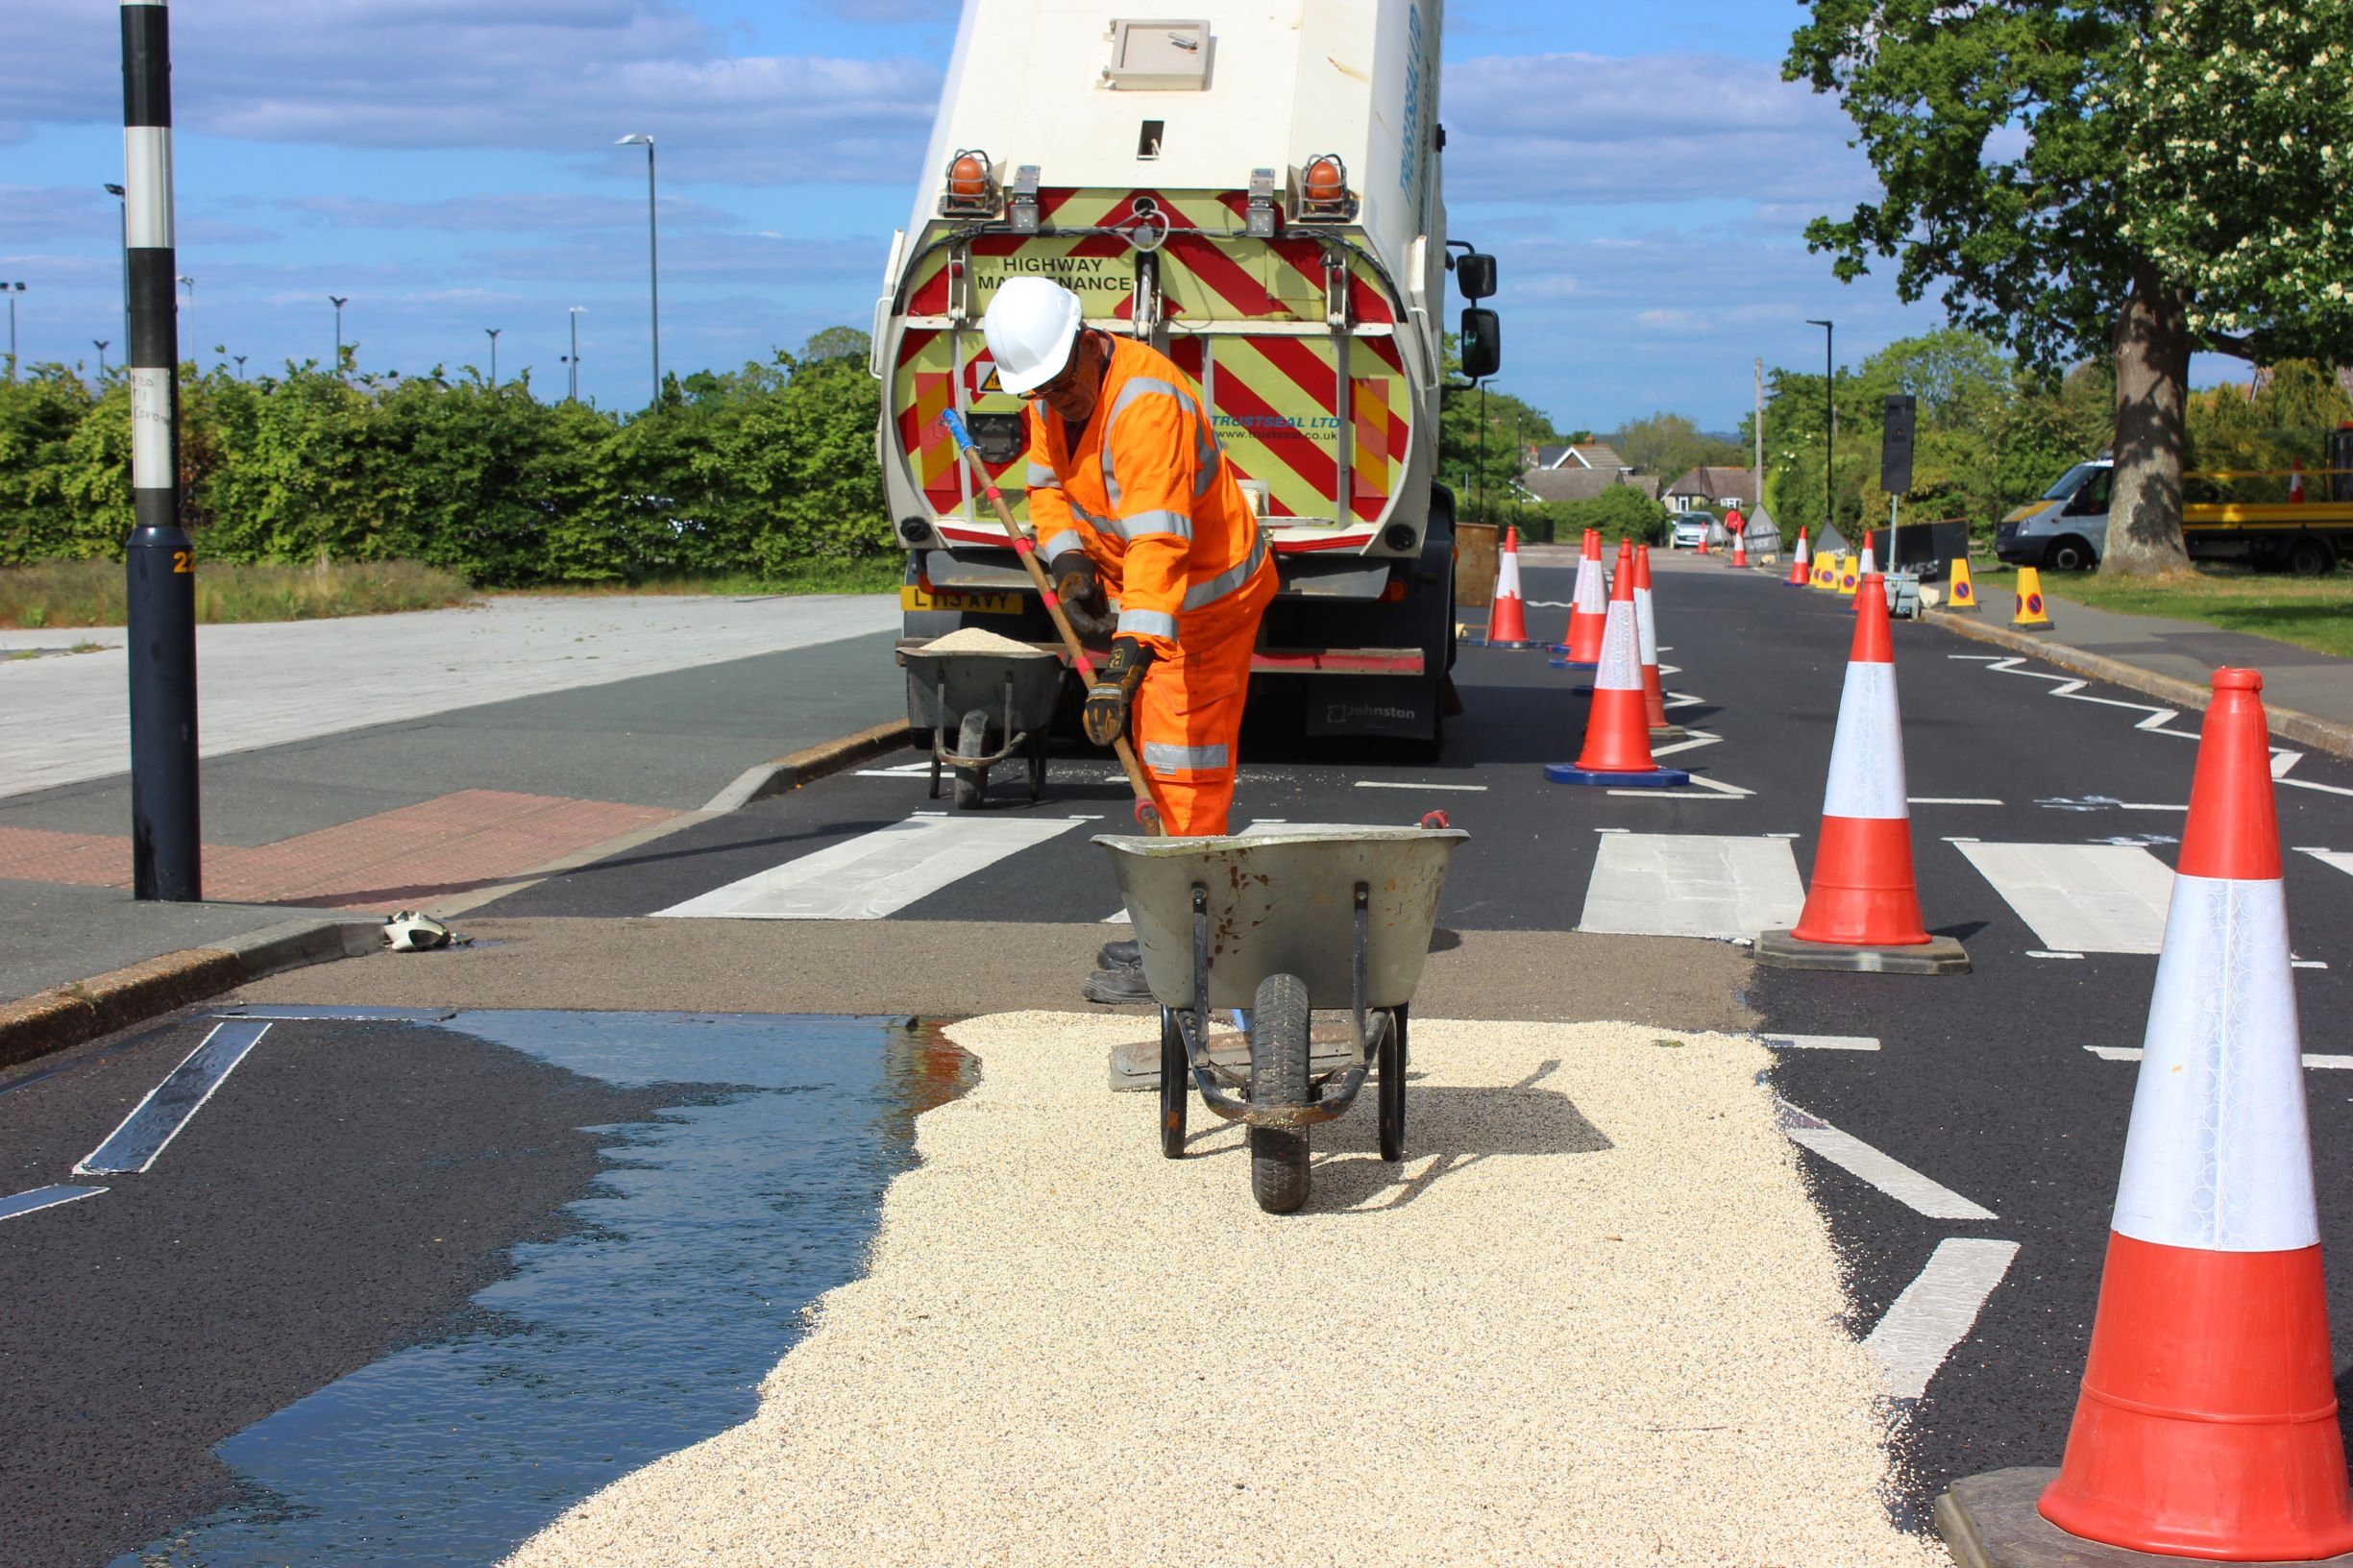 photo showing a workman and lorry laying high friction surfacing (a coarse material) in front of a pedestrian crossing